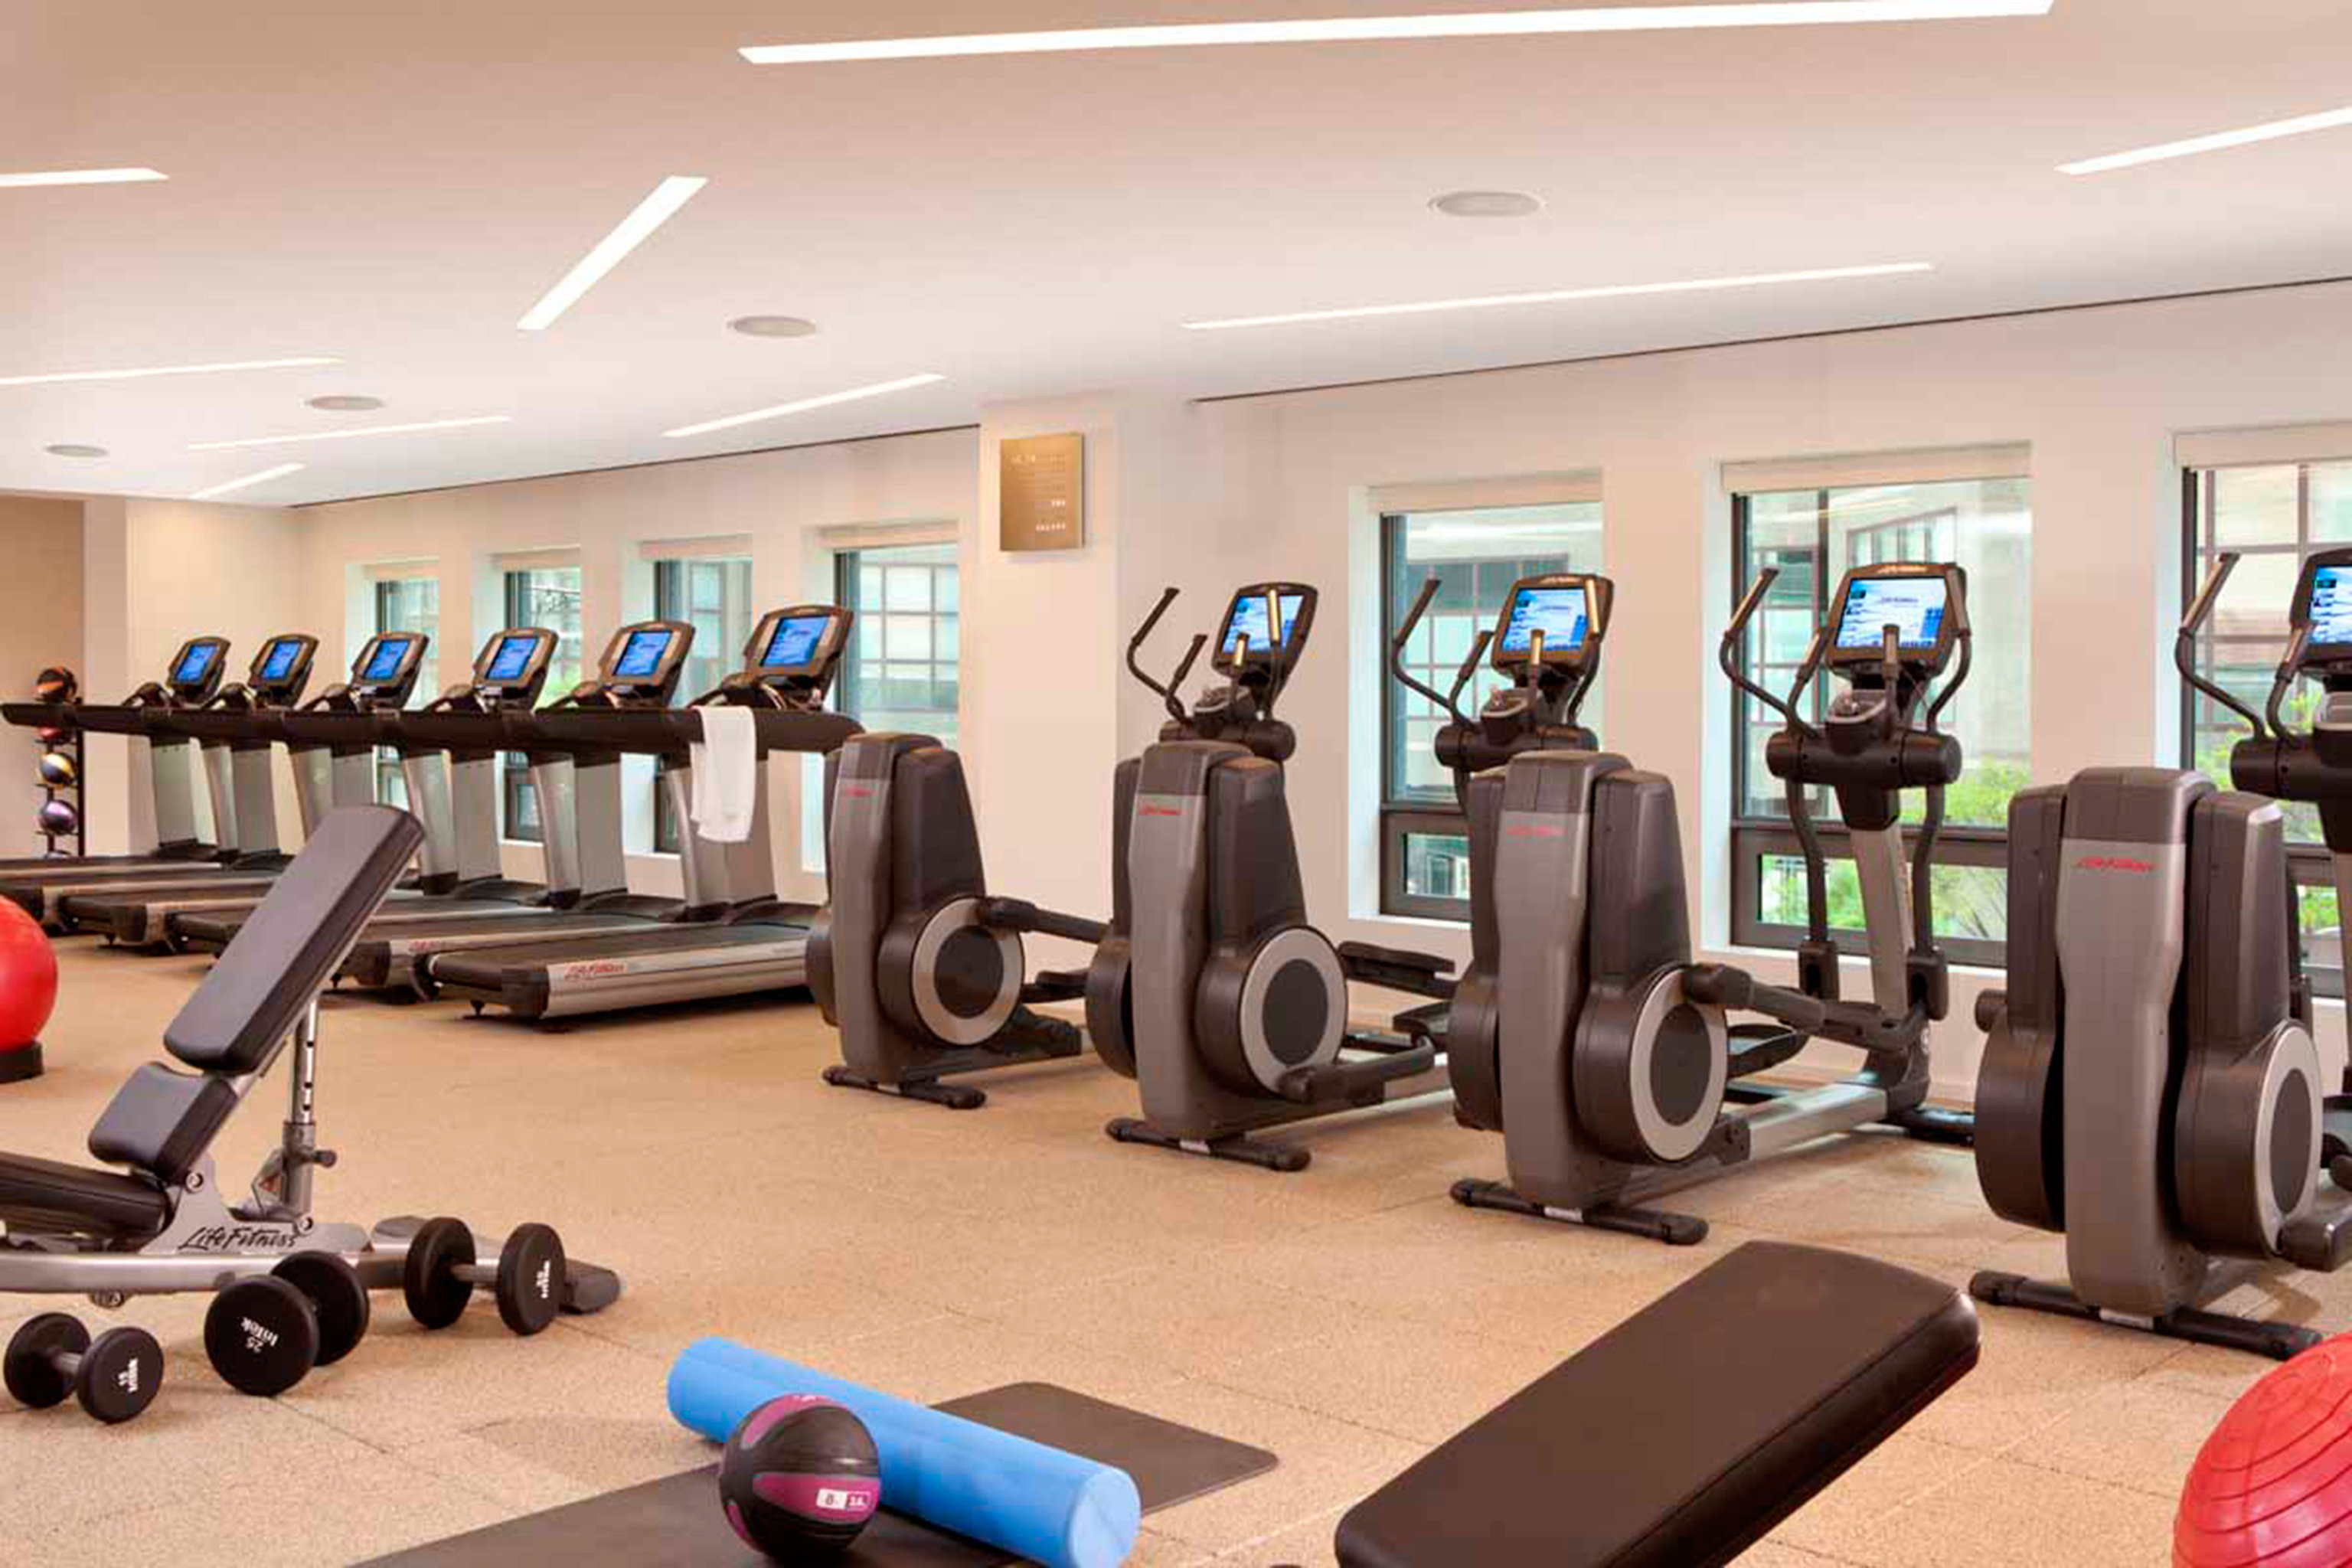 structure gym sport venue leisure bodypump physical fitness